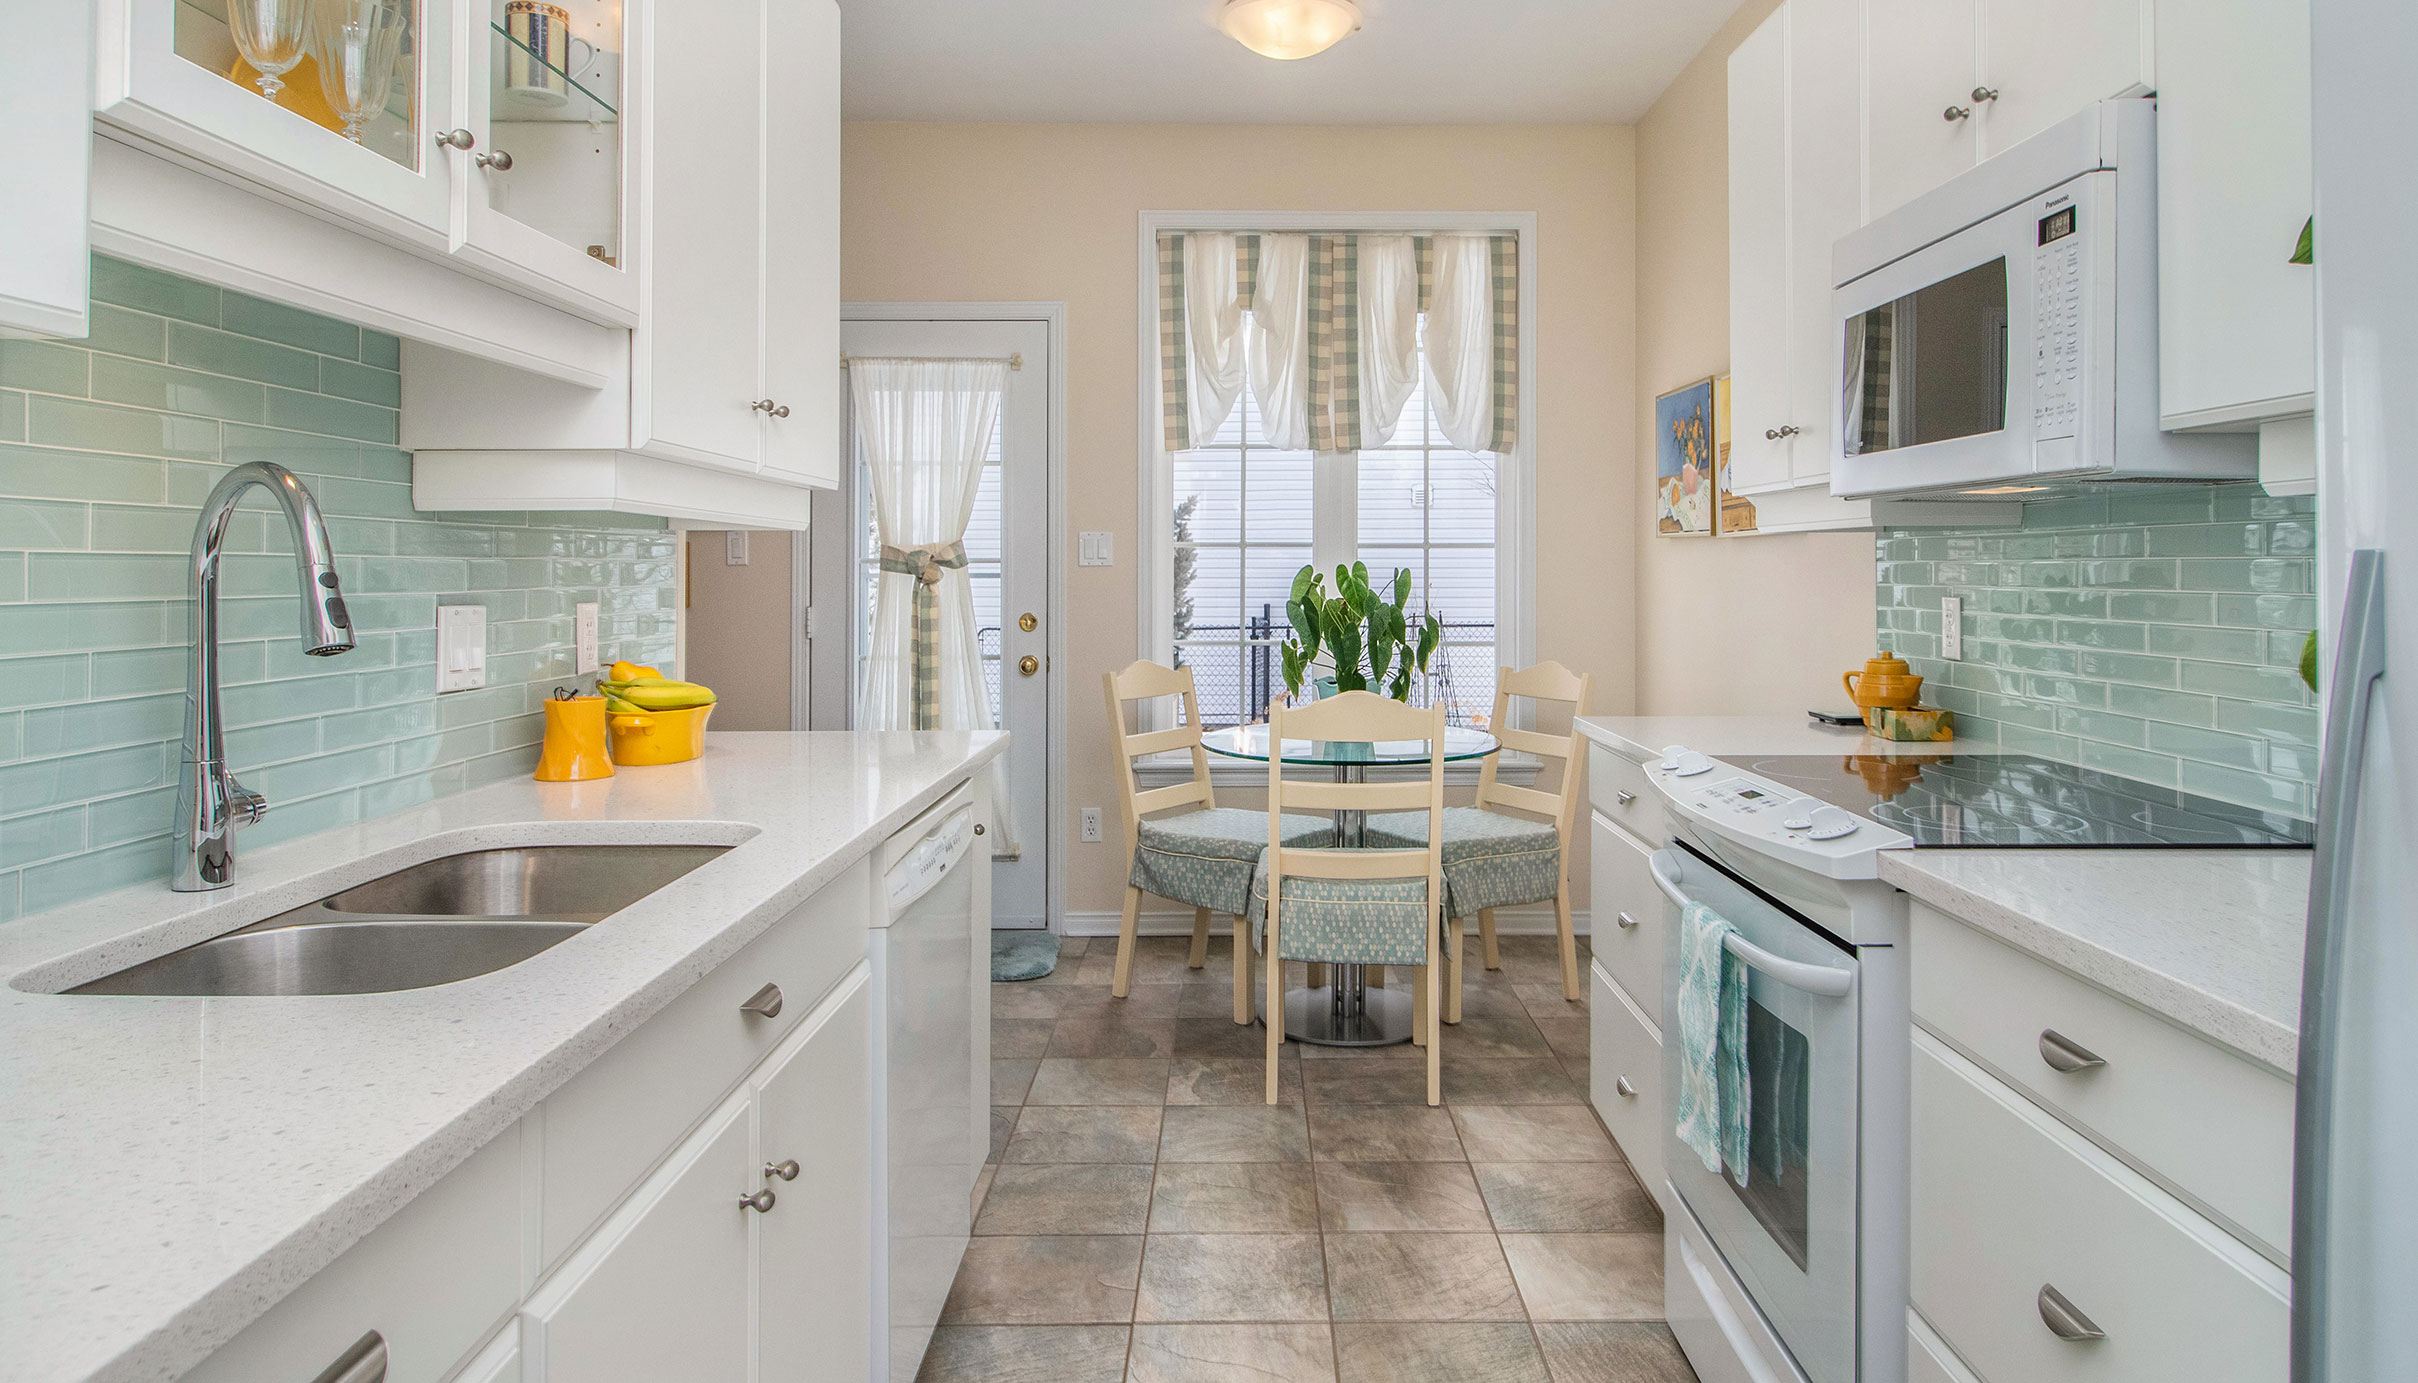 Stunning white and bright galley style kitchen with quartz counter tops and glass tiled backsplace.  Also has a nice eating area.